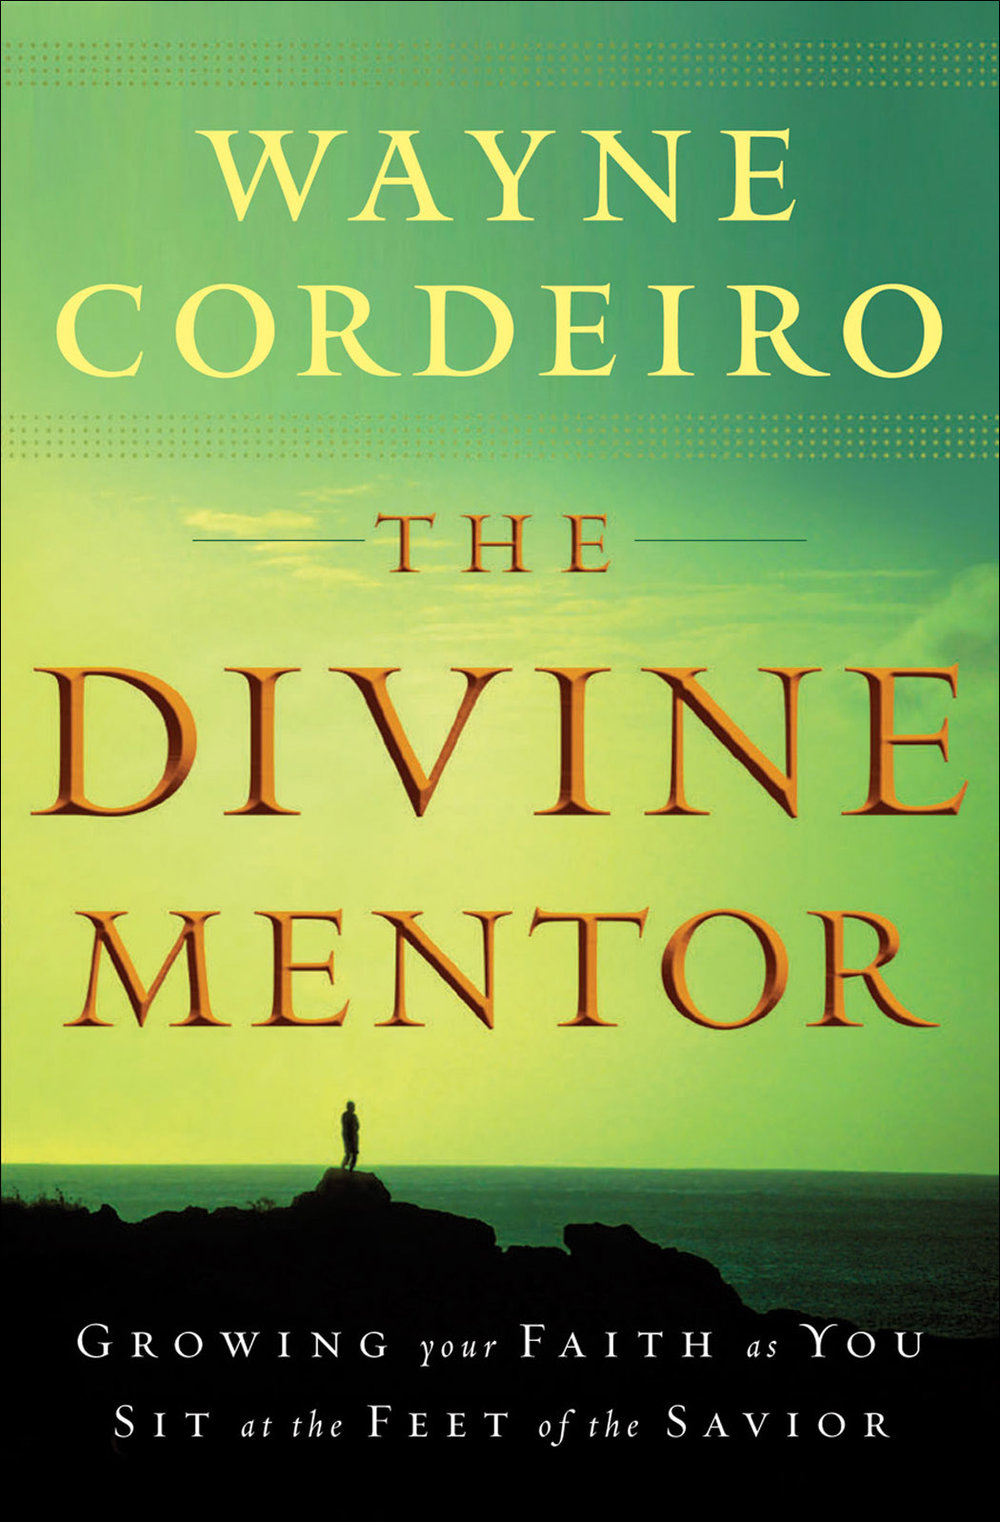 The Divine Mentor  by Wayne Cordeiro